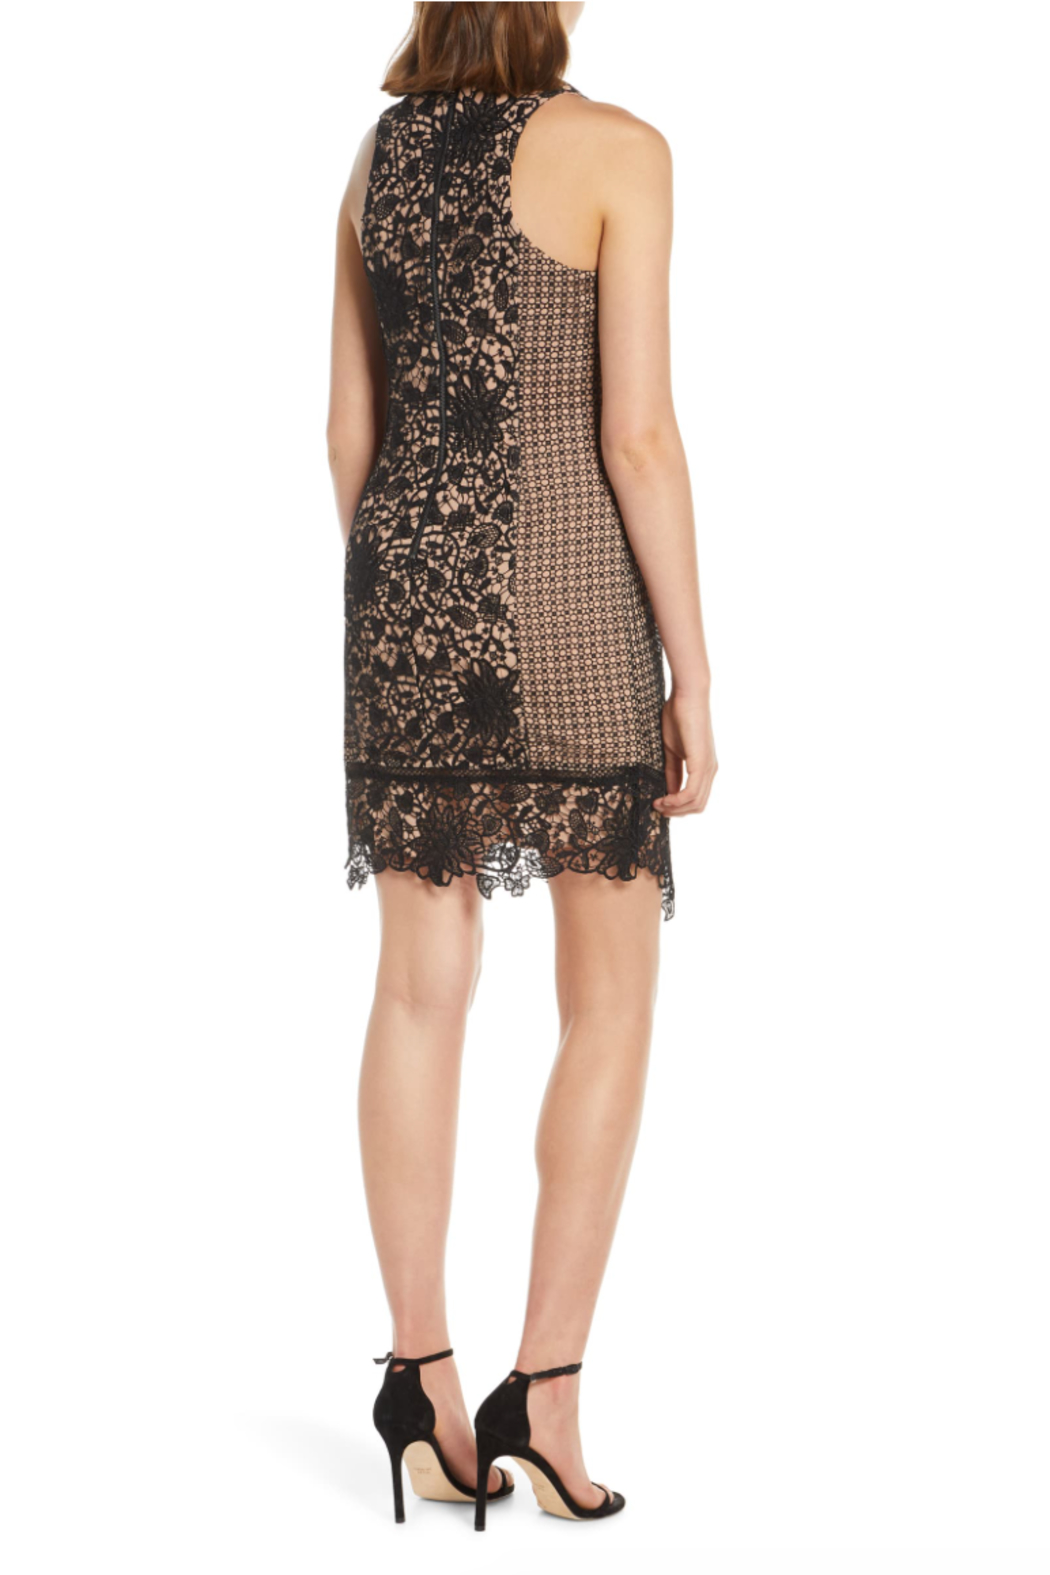 Adelyn Rae Alessia Lace Dress - Front Full Image